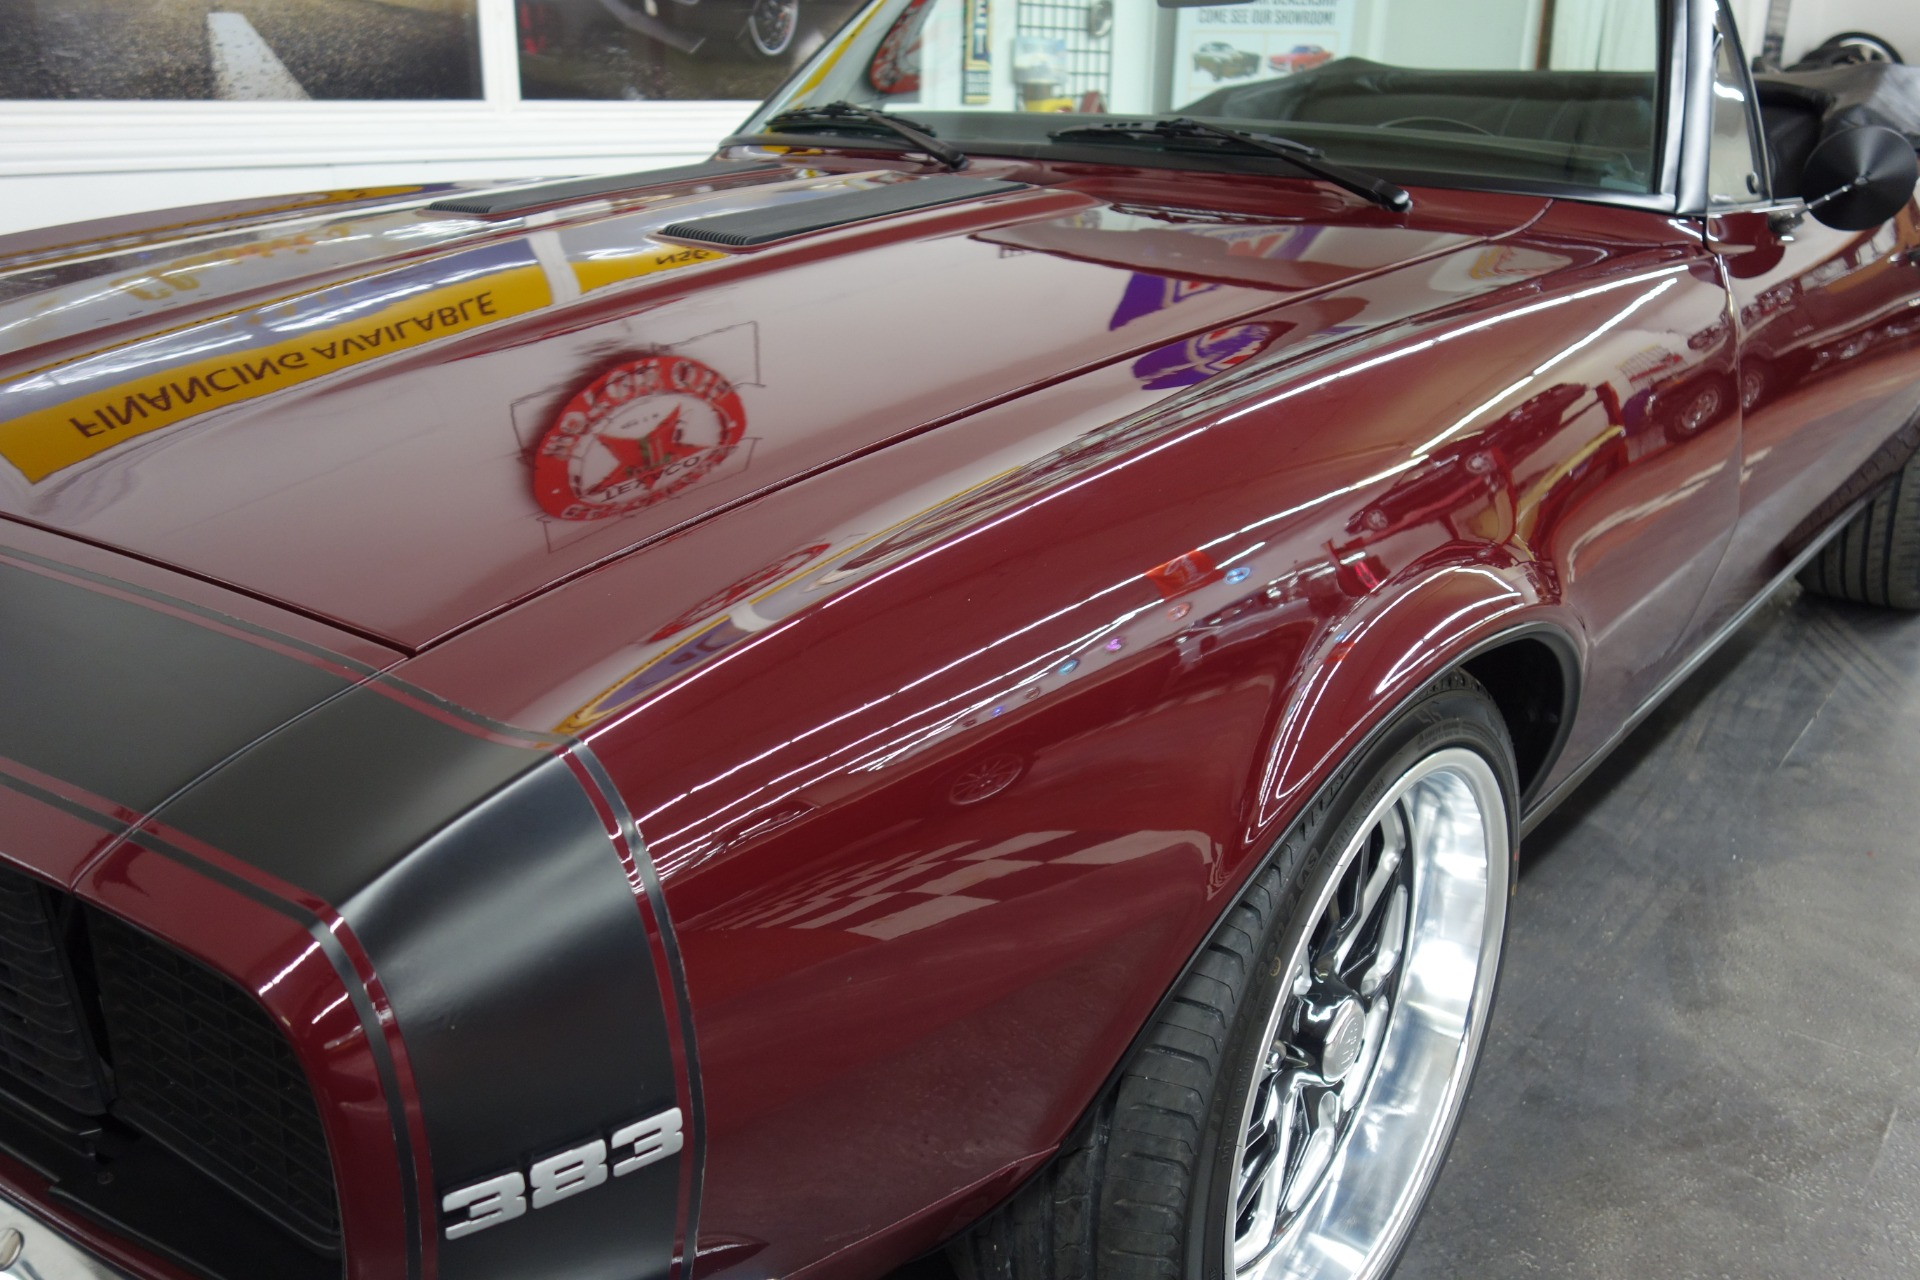 Used 1967 Chevrolet Camaro - RS/SS RESTO-MOD CONVERTIBLE - 383 STROKER - 4 WHEEL DISC - SEE VIDEO | Mundelein, IL